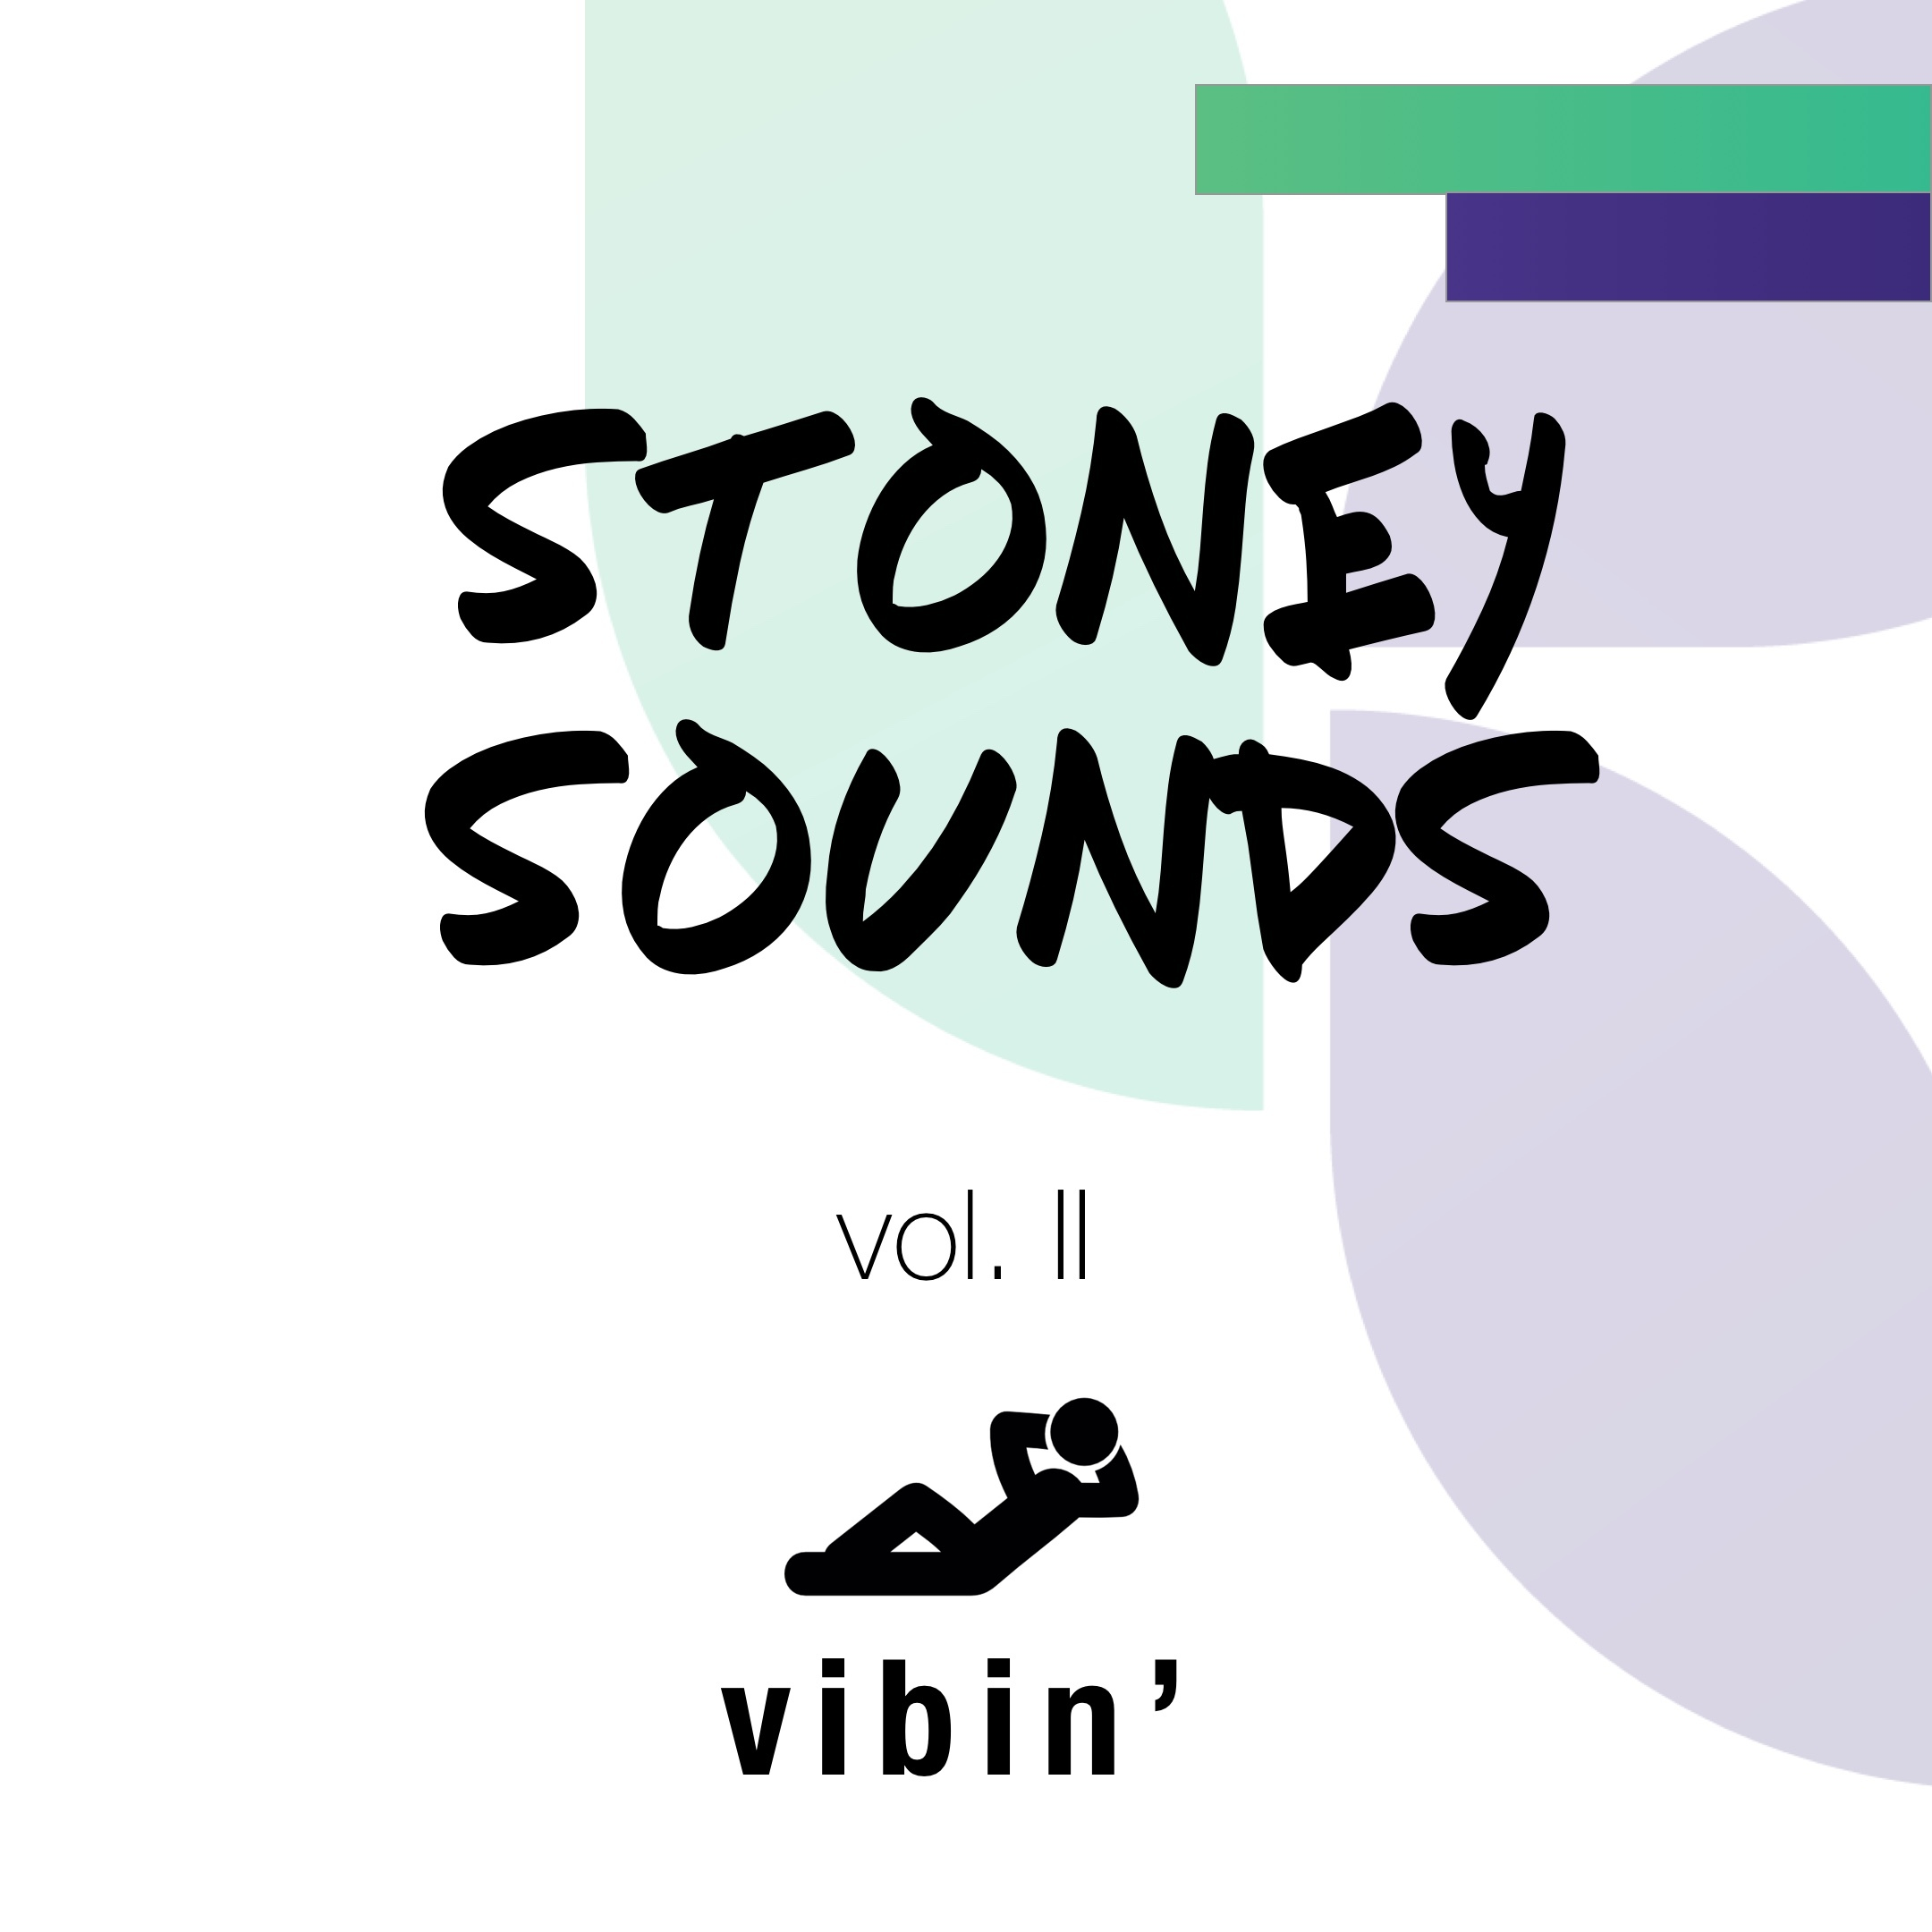 Stoney Sounds (vol. II) - Vibin'